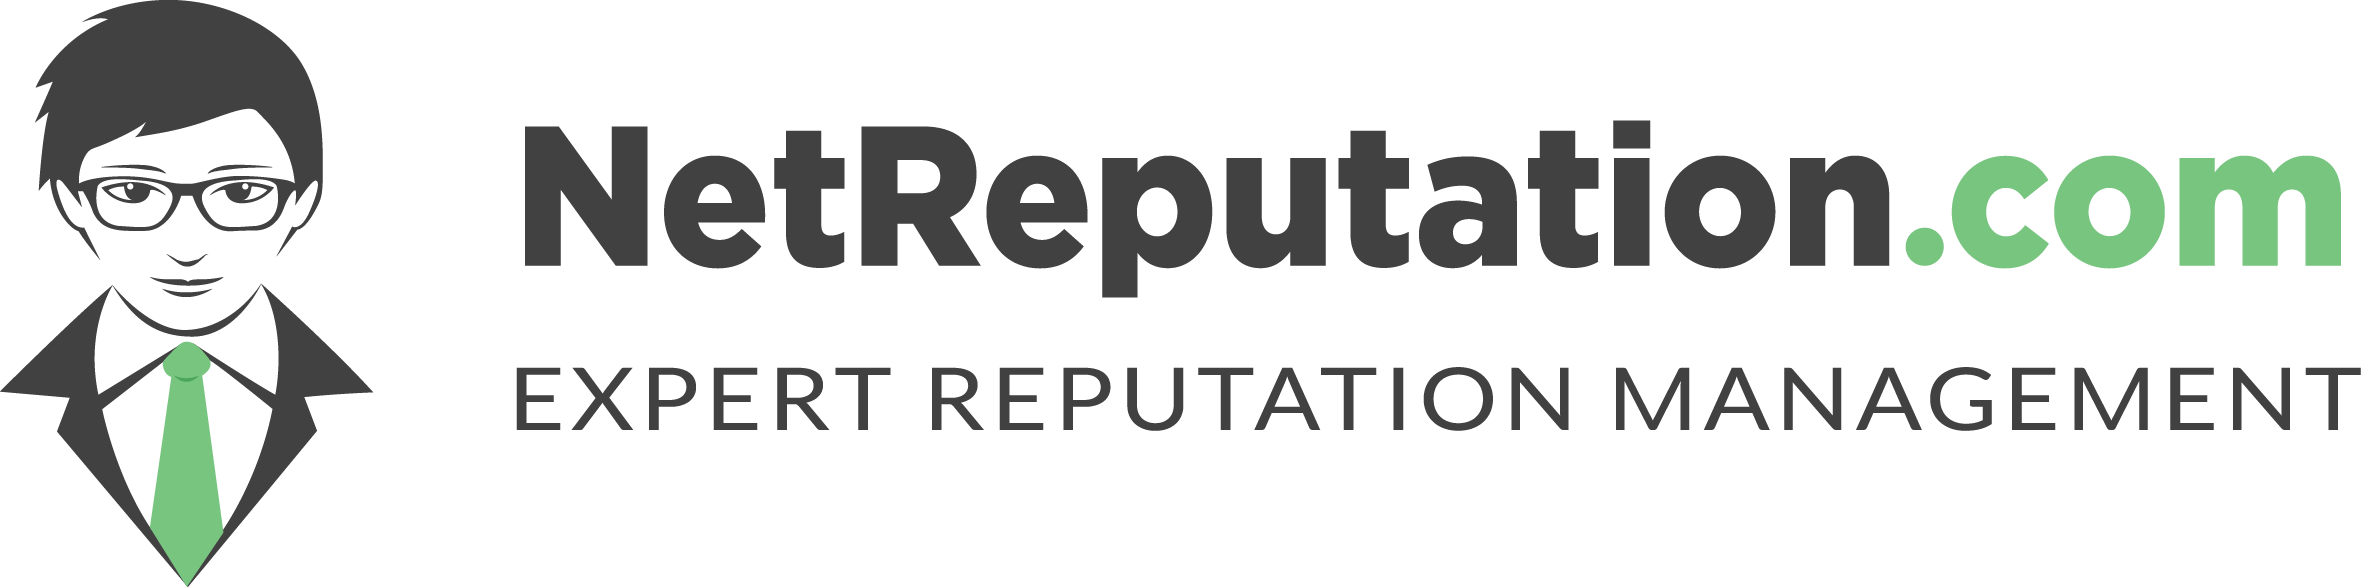 Net Reputation